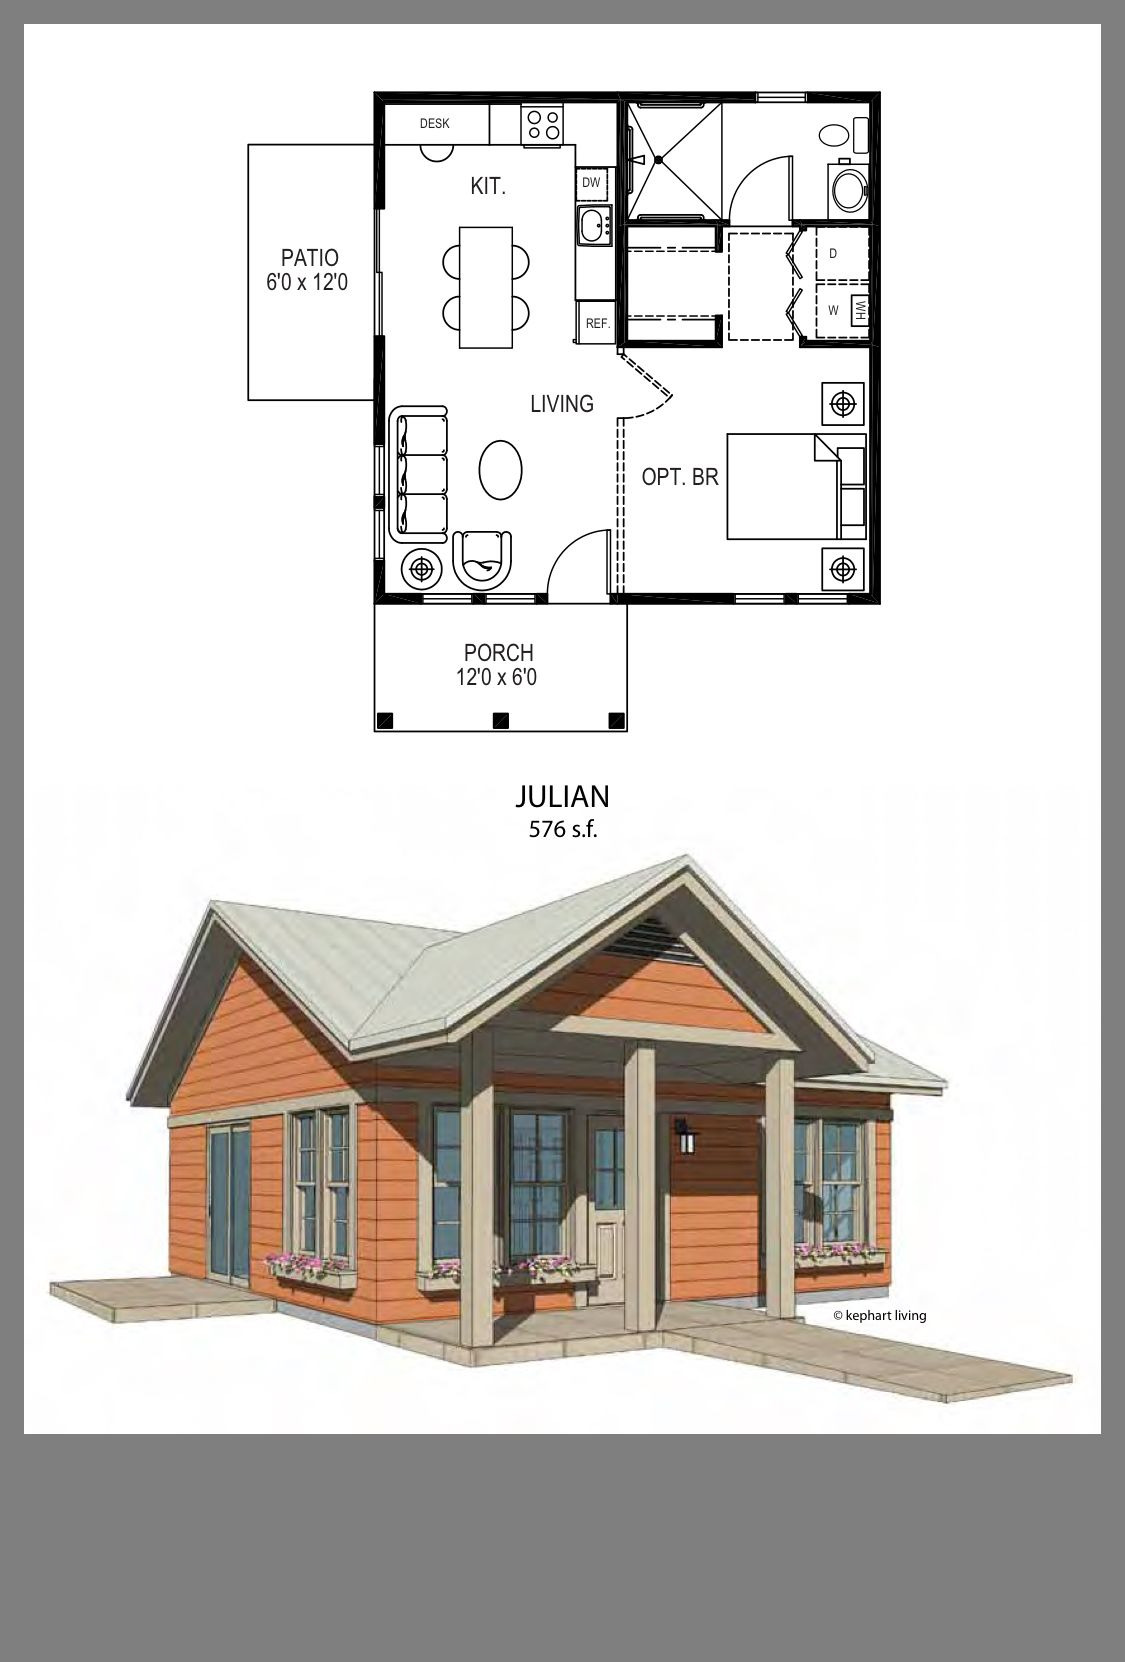 Small House Plans and Designs Luxury Julian Small but Efficient